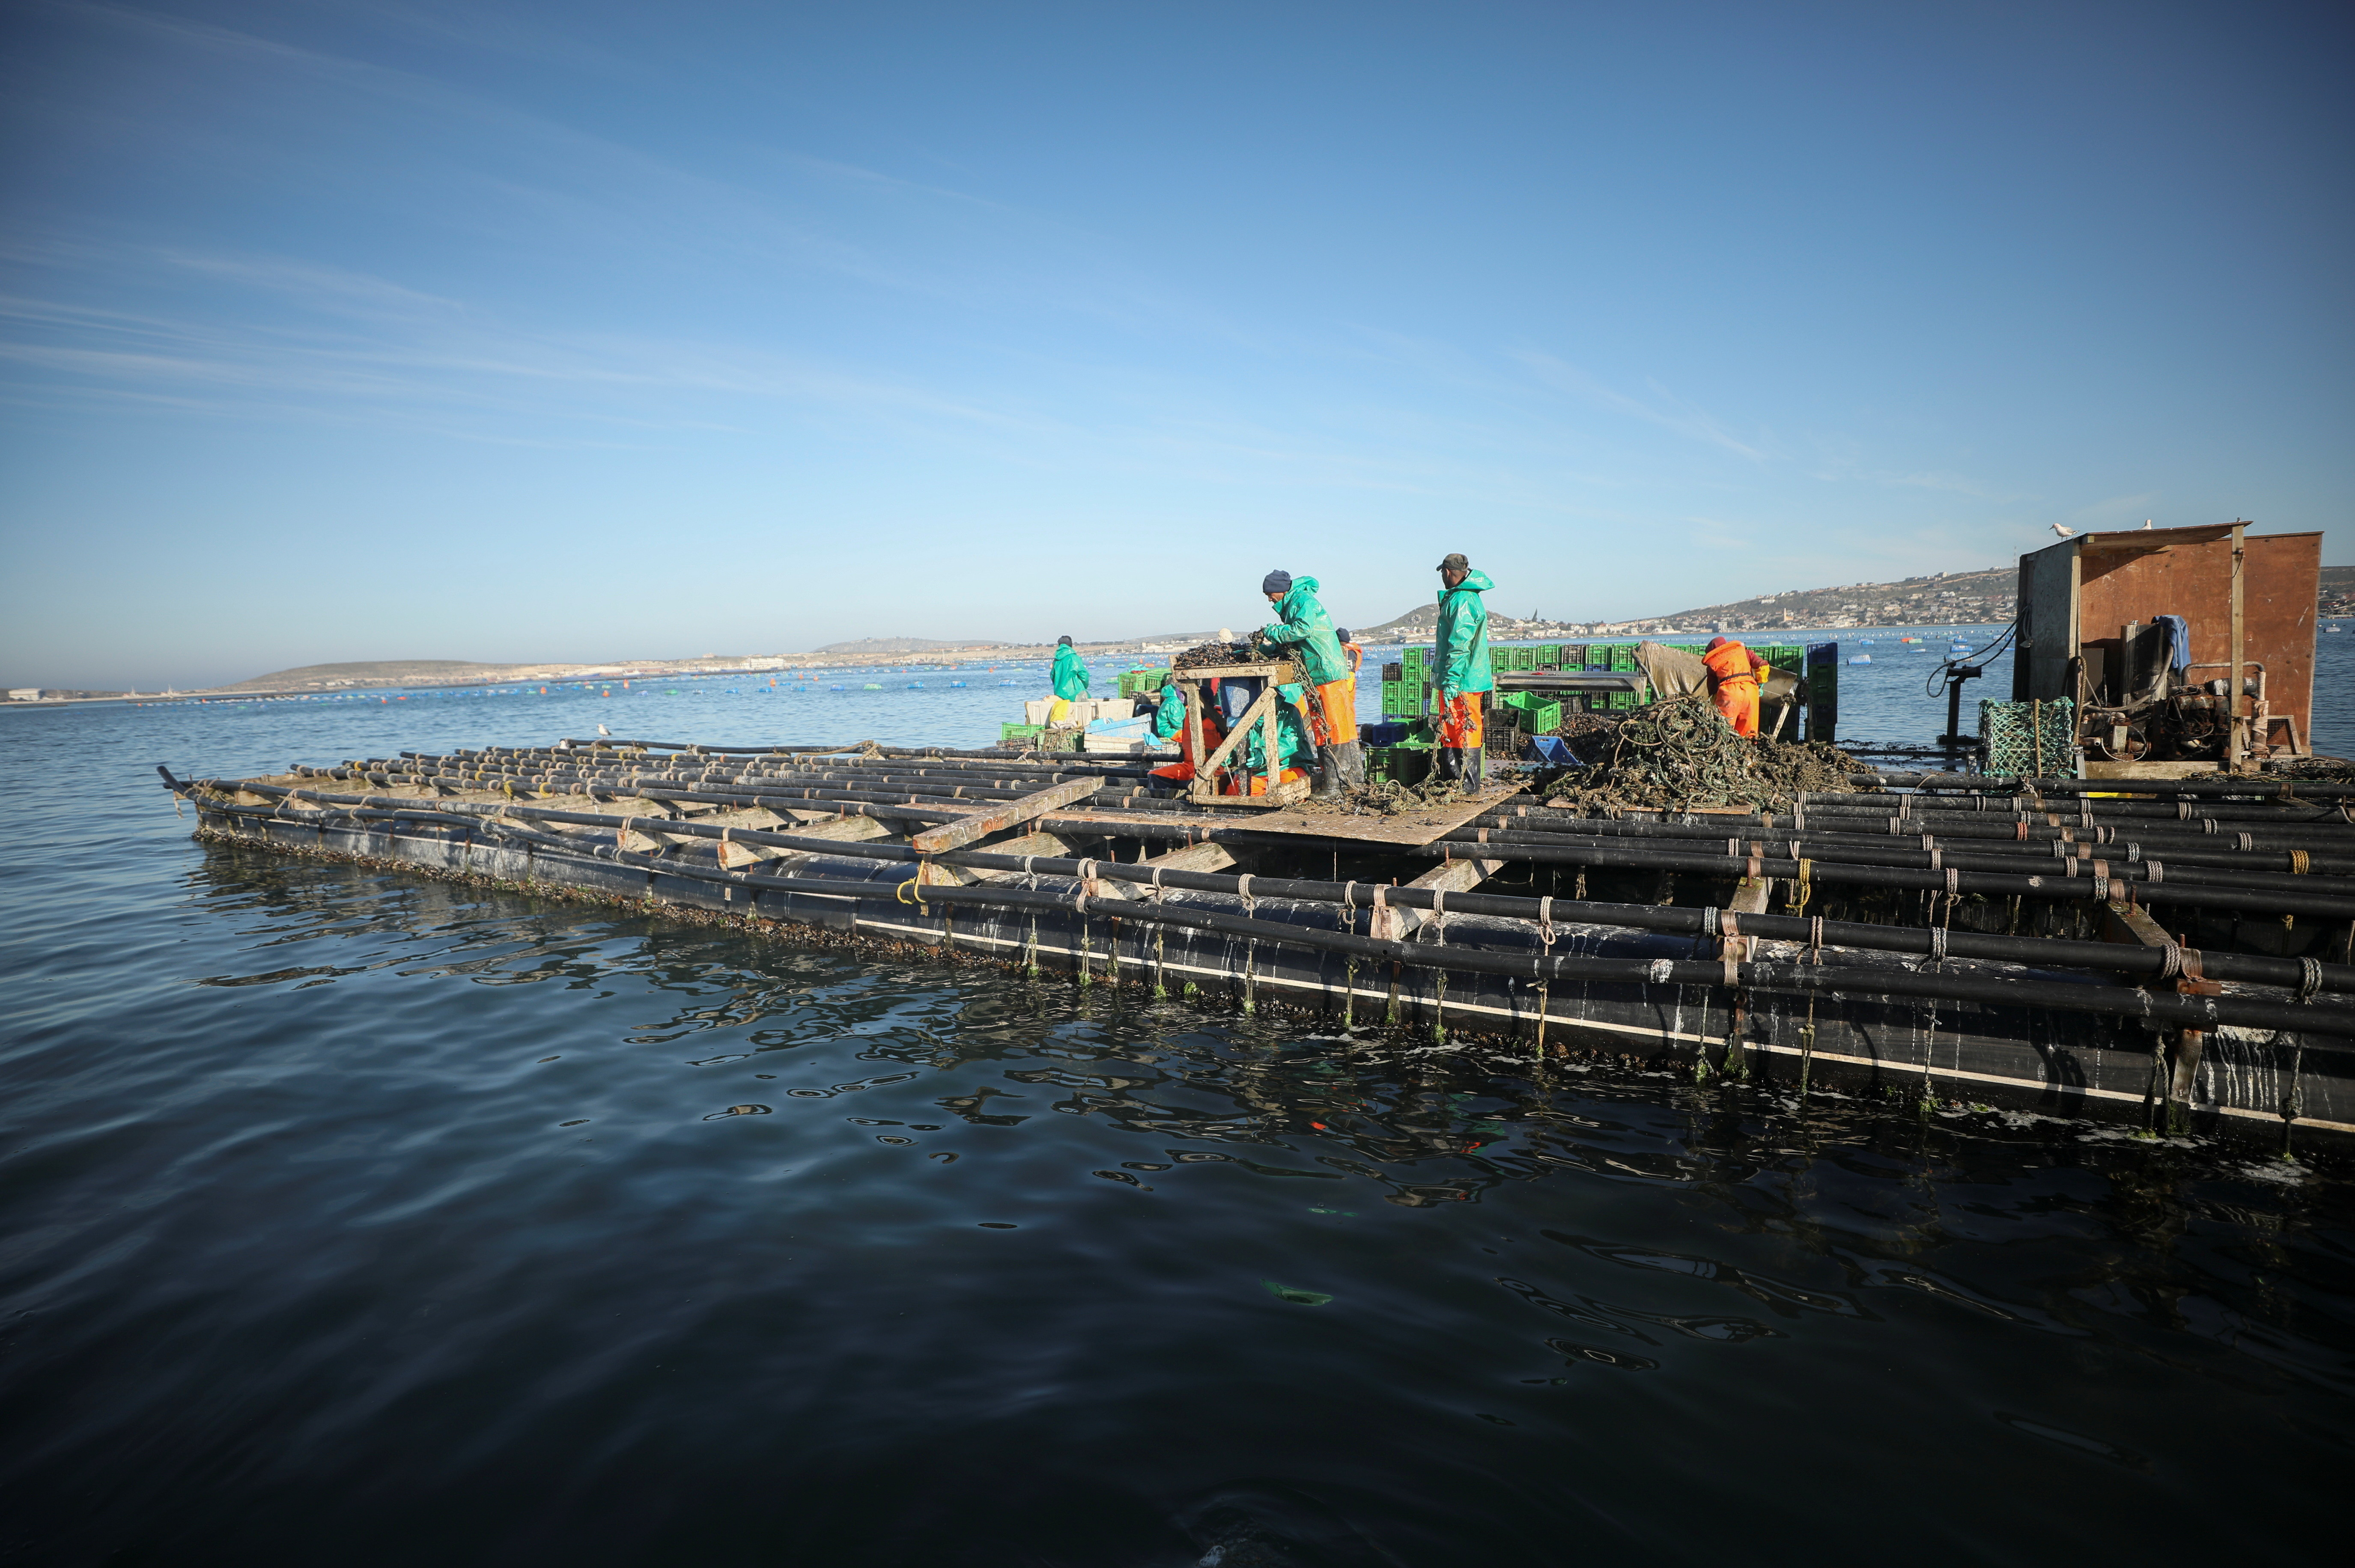 Workers aboard an aquaculture raft sort mussels and oysters in Saldanha Bay near Cape Town, South Africa, June 15, 2021. Picture taken June 15, 2021. REUTERS/Mike Hutchings - RC2Y0O9HY3O0